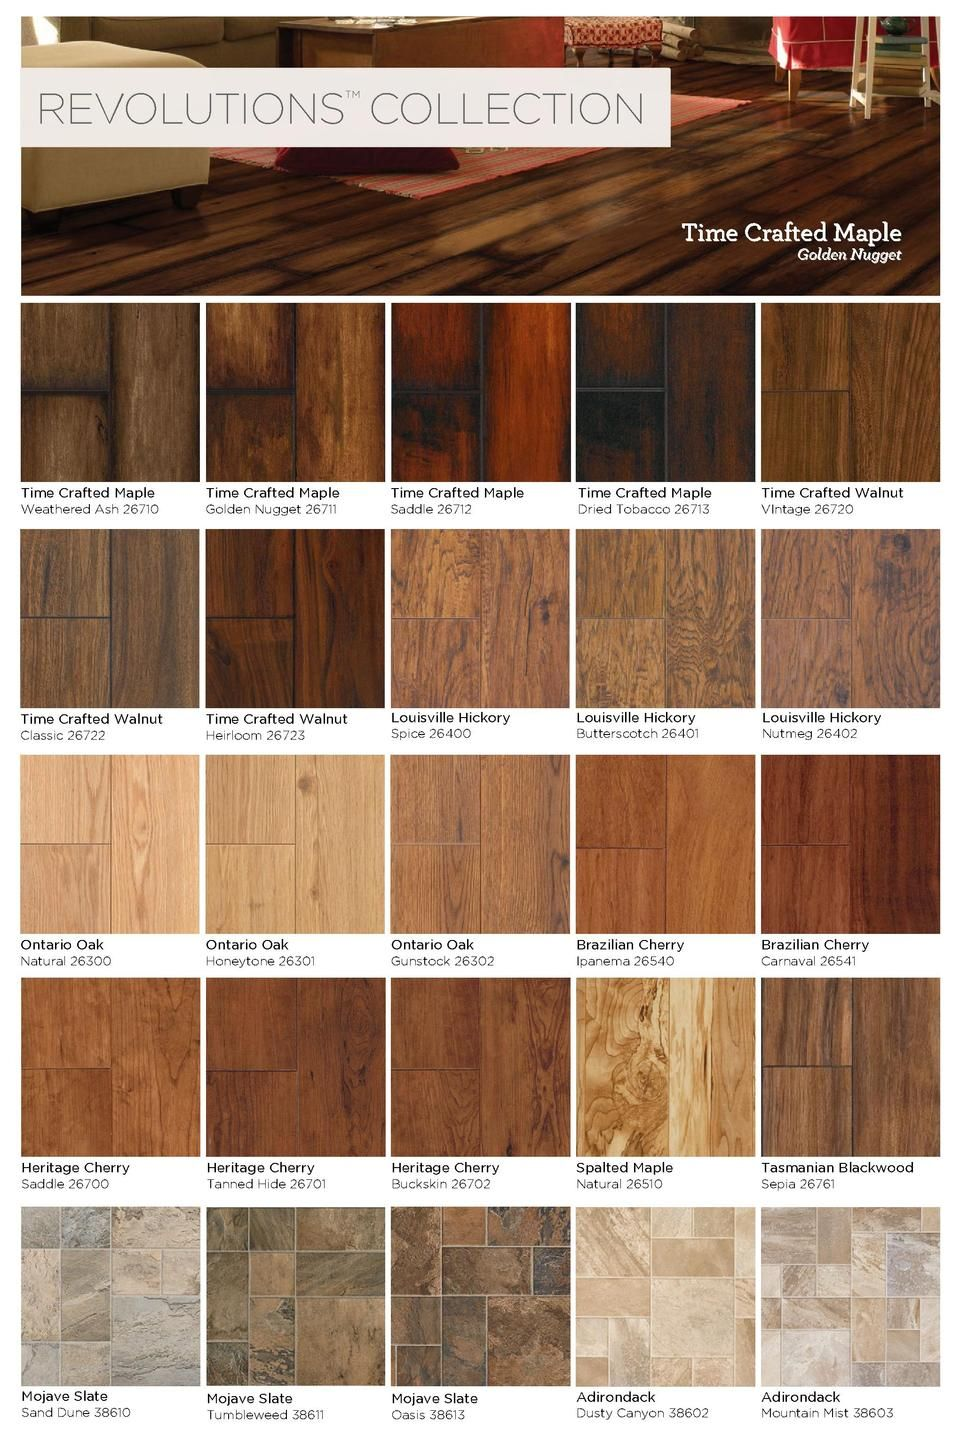 Mannington Offers Quality Laminate Flooring In Both